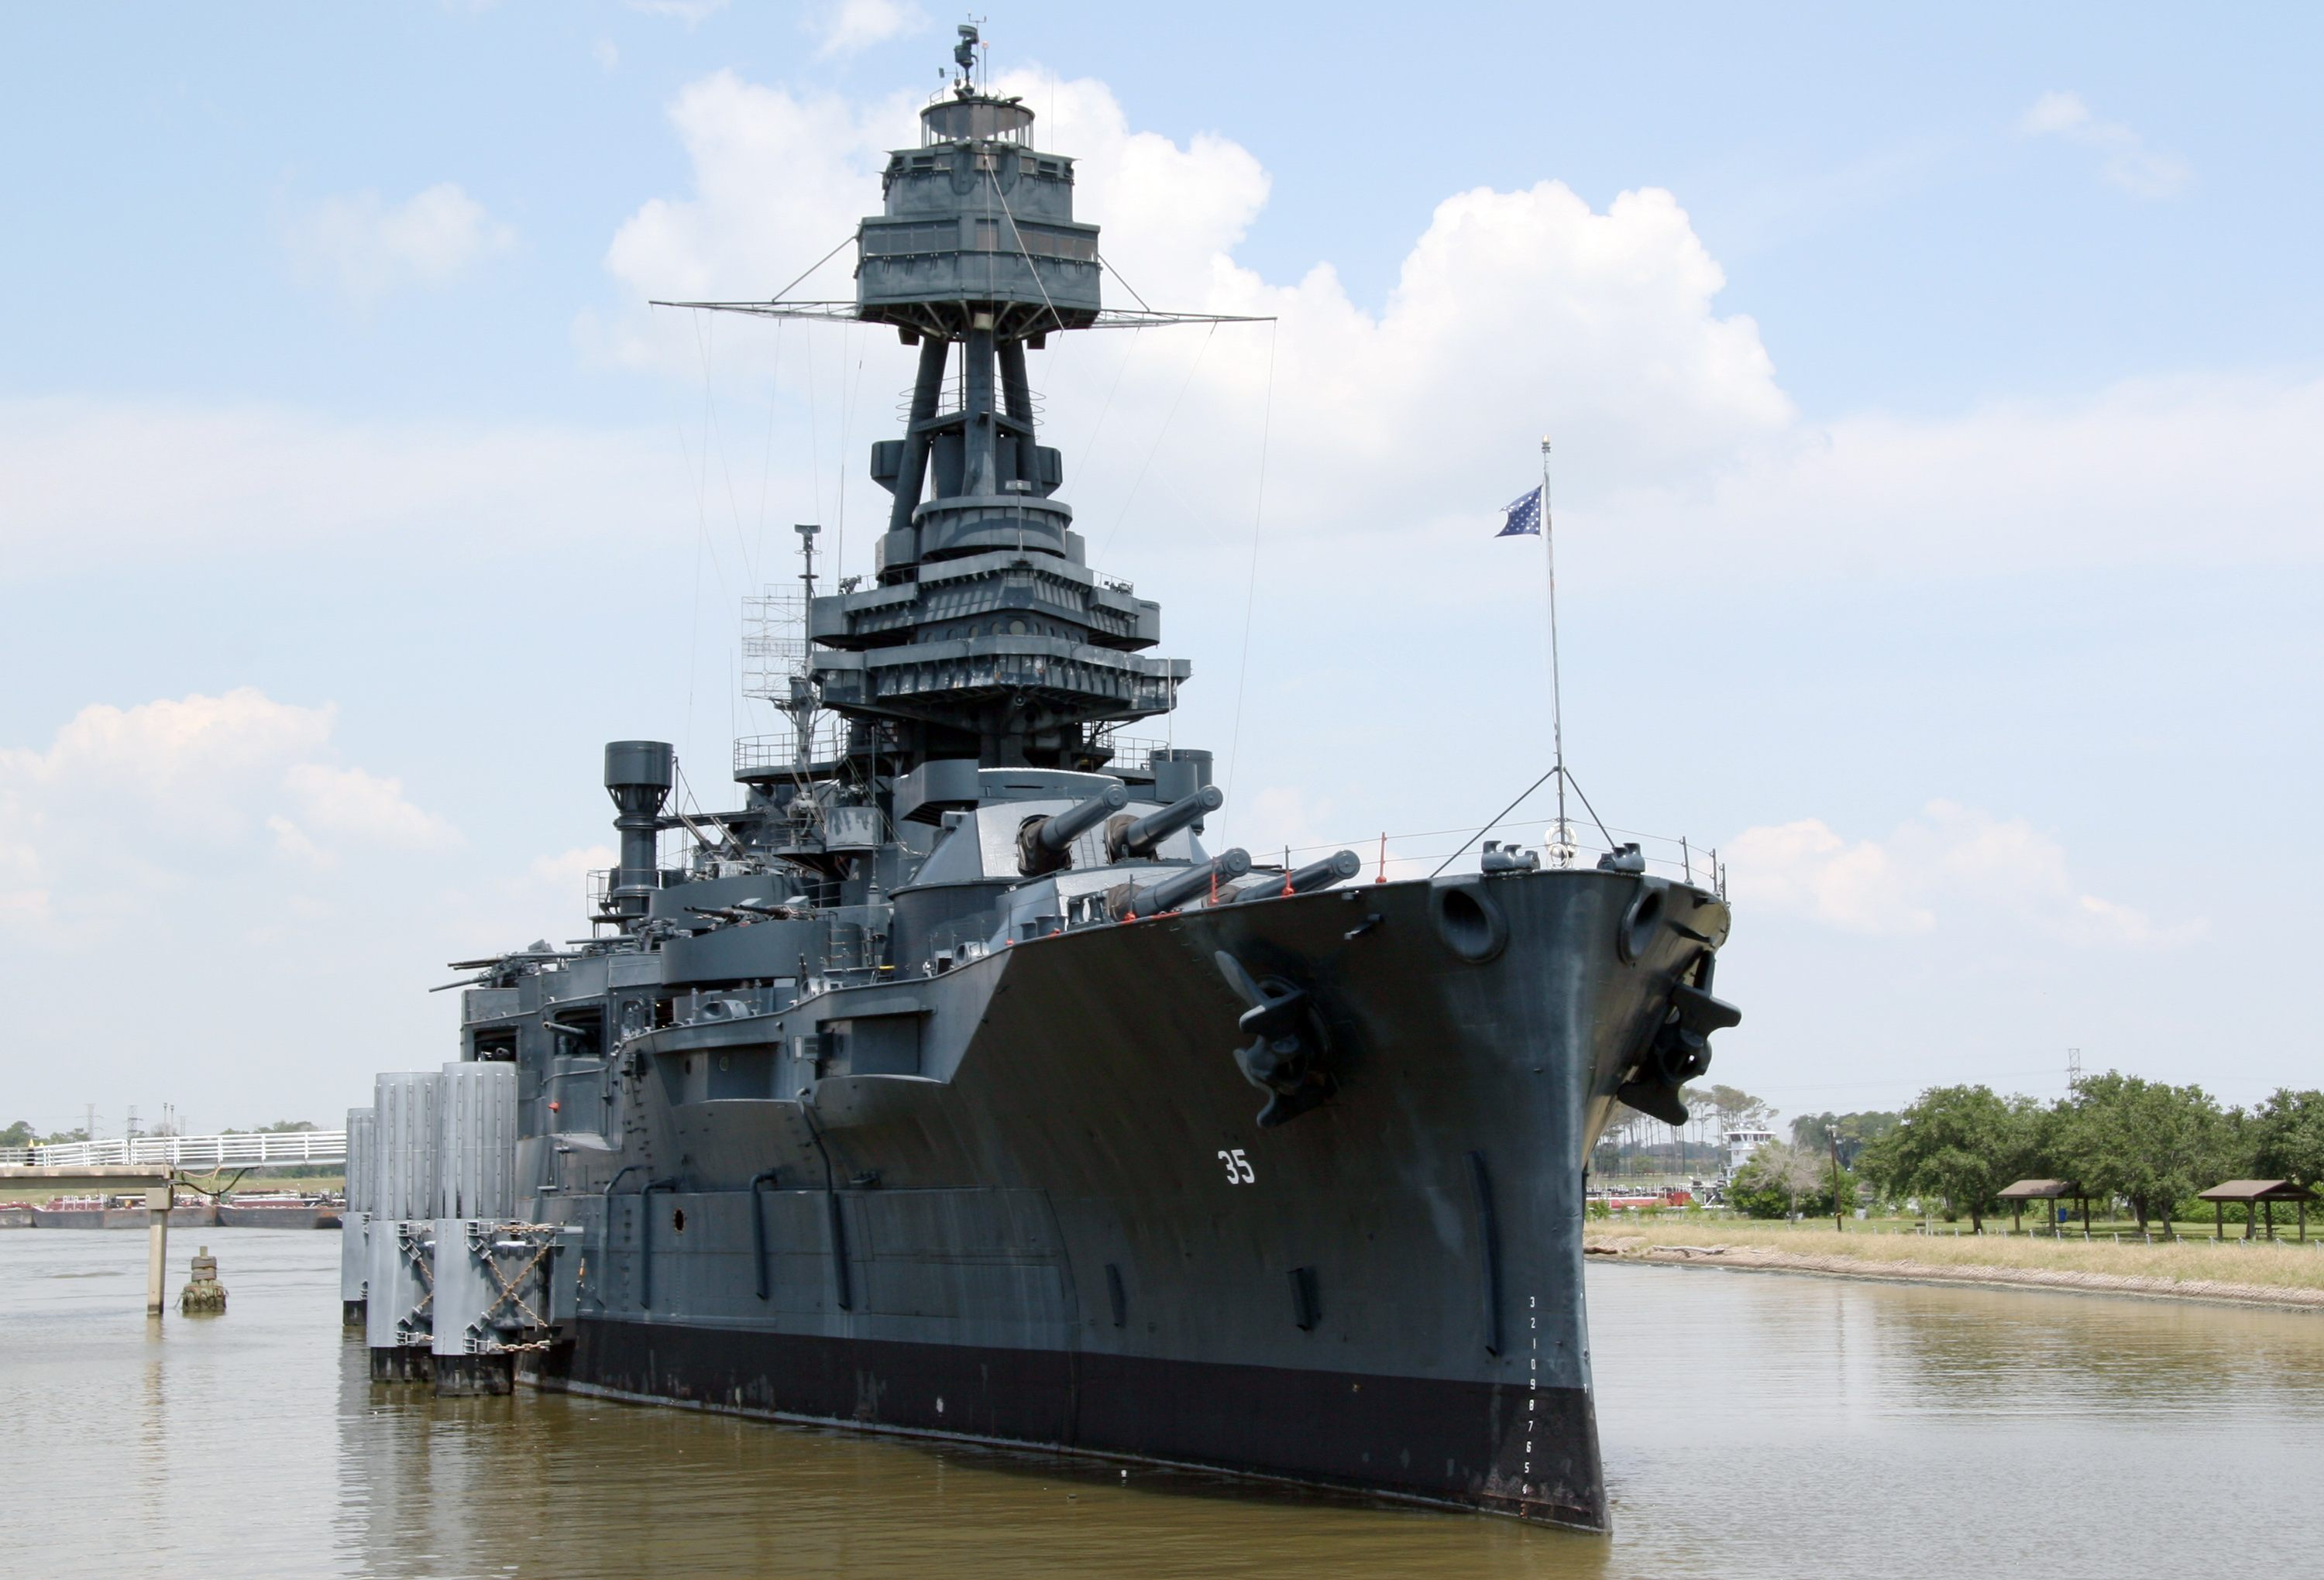 State Budget Includes $25M to Preserve the Battleship Texas